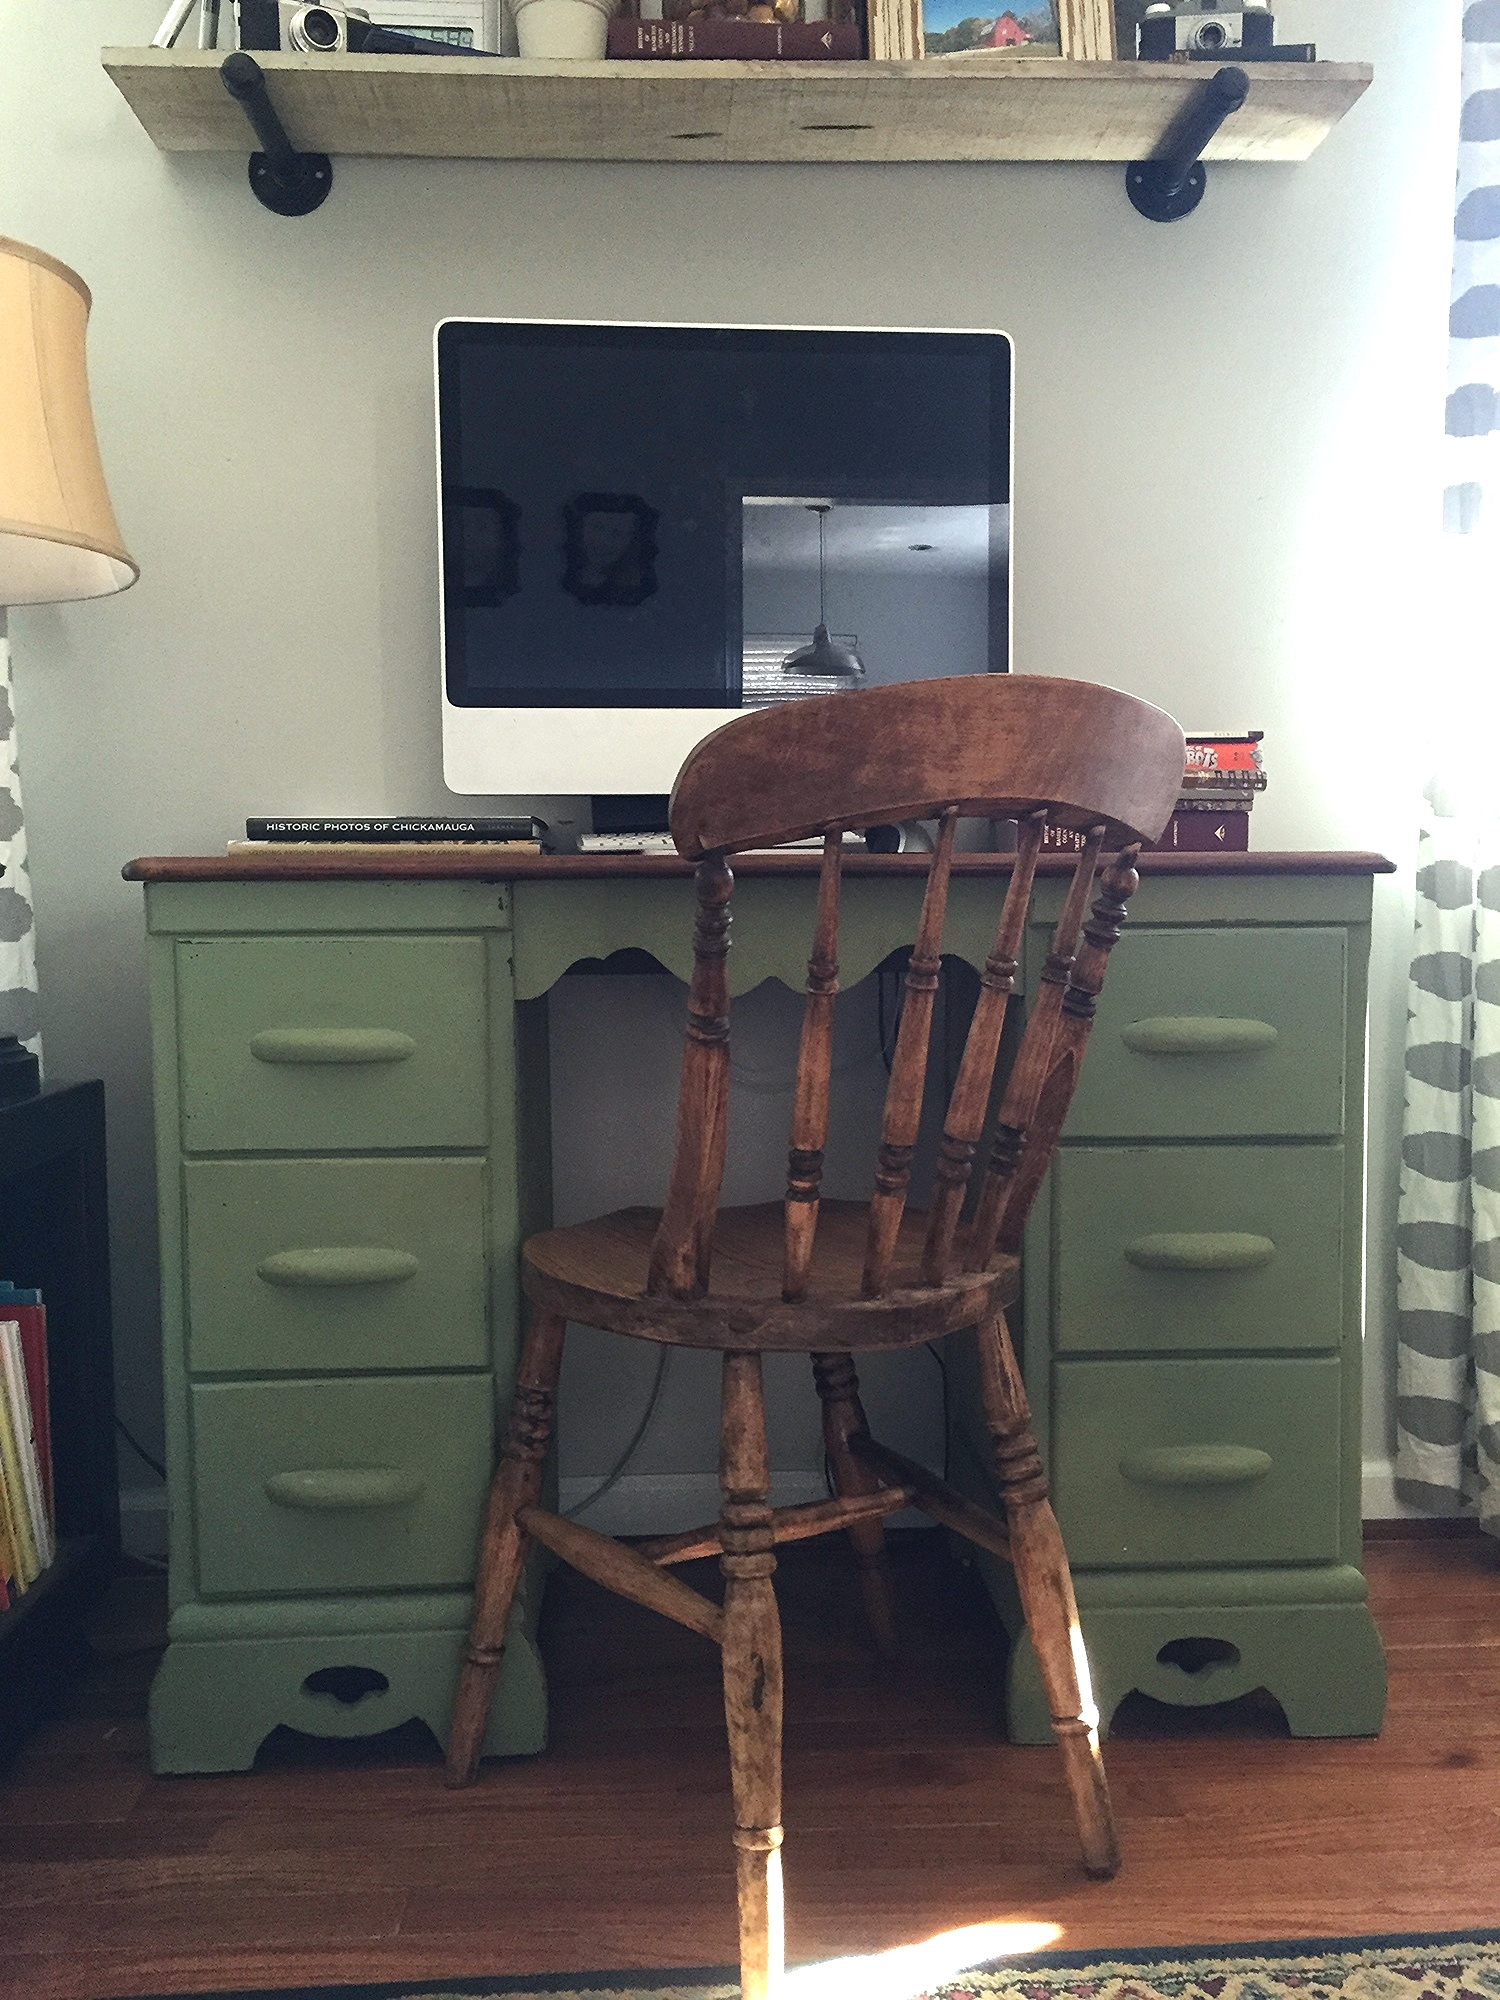 The finished product with Ron's favorite old chair.